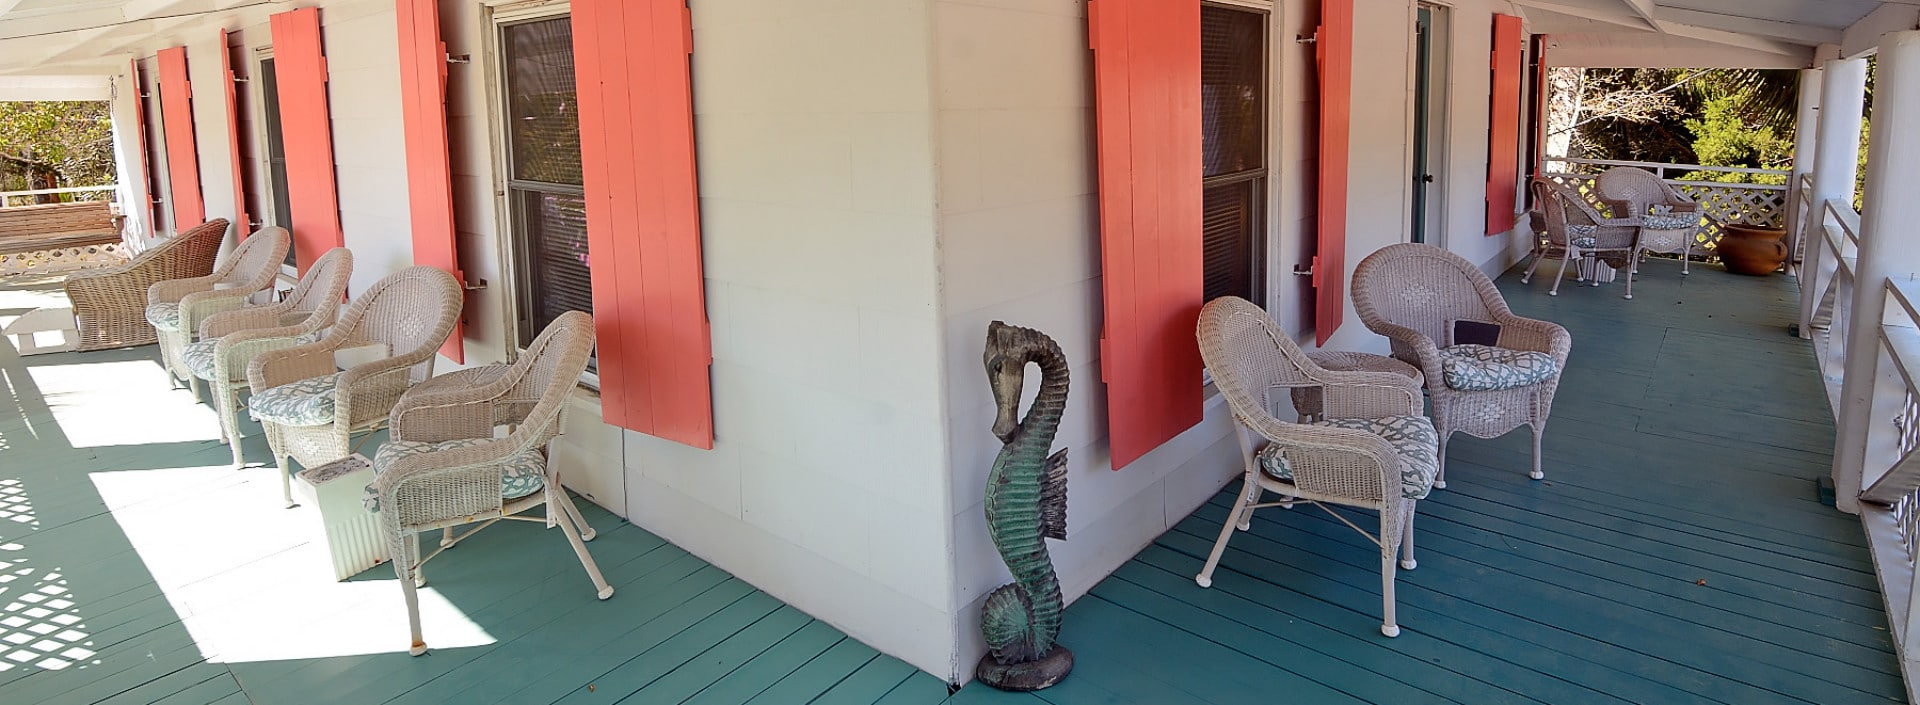 Porch of Old Carrabelle Hotel